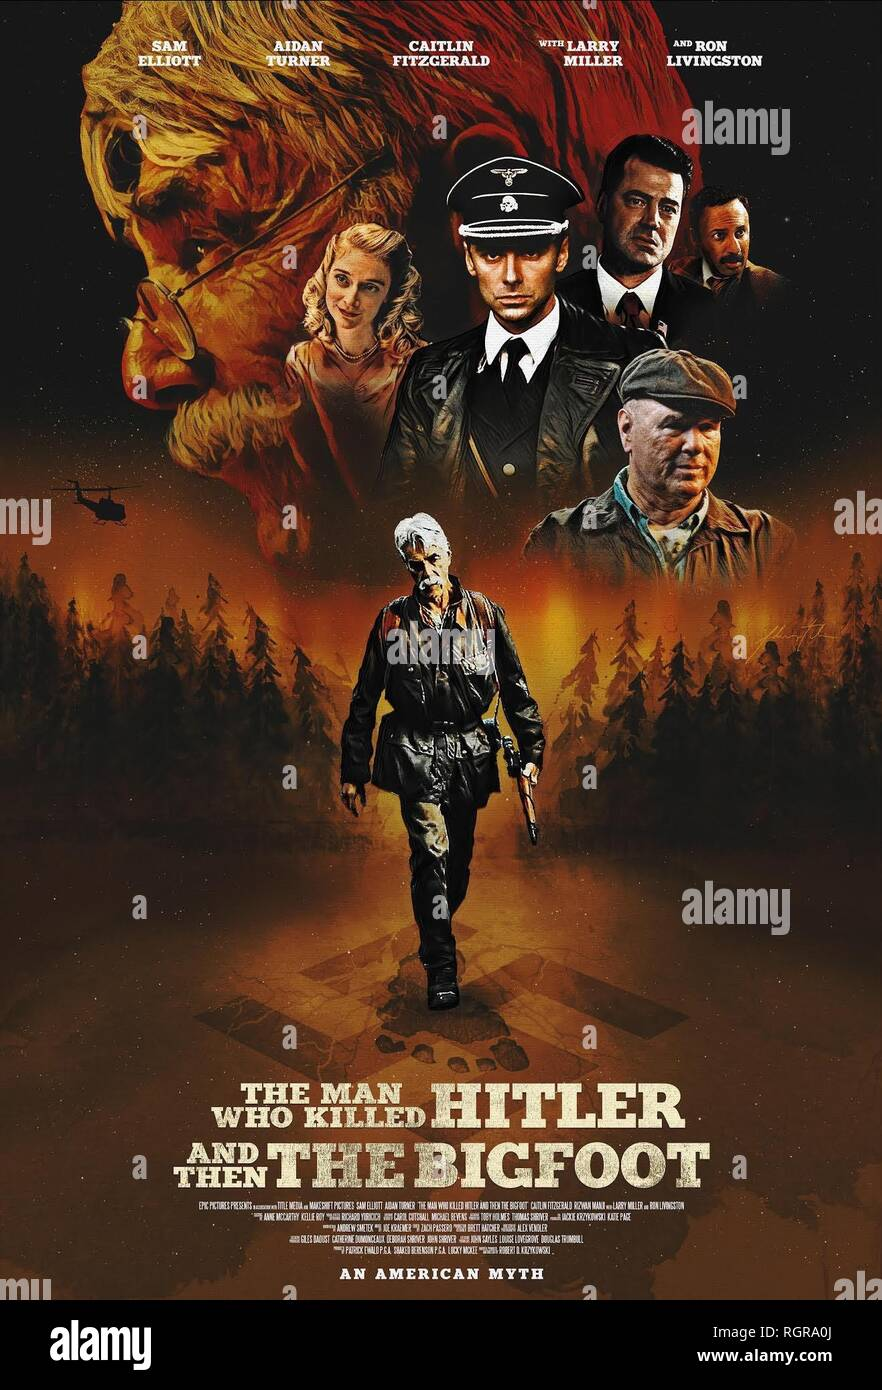 MOVIE POSTER THE MAN WHO KILLED HITLER AND THEN THE BIGFOOT (2018) Stock Photo